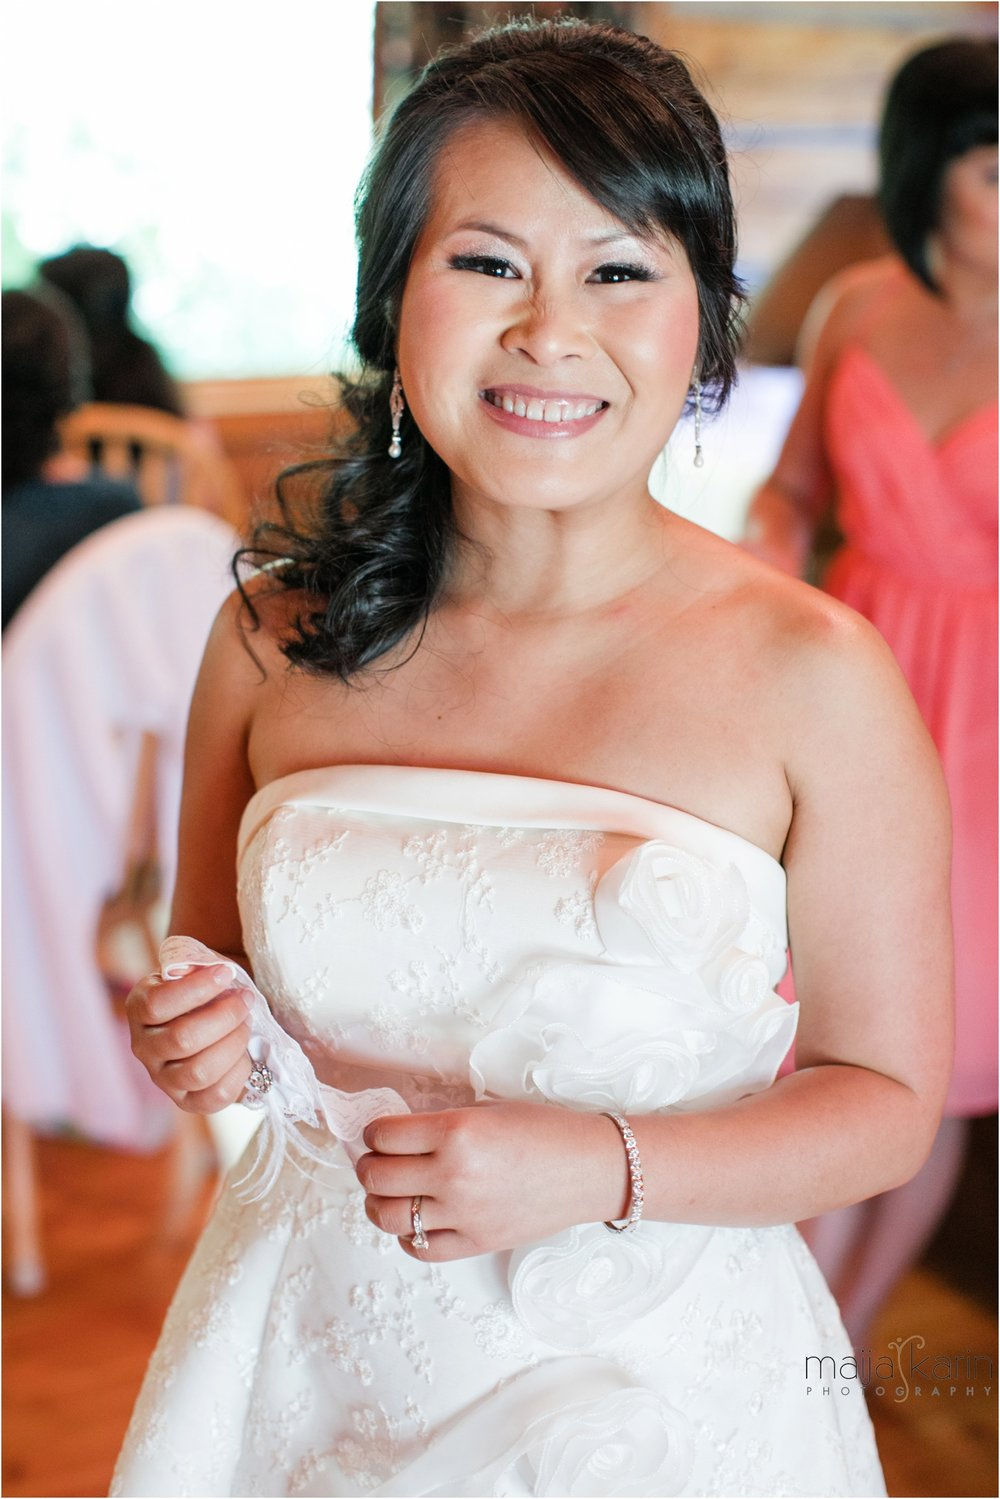 Mountain-Springs-Lodge-Leavenworth-Washington-Wedding-Photographer-Majiin-Karin-Photography_18.jpg